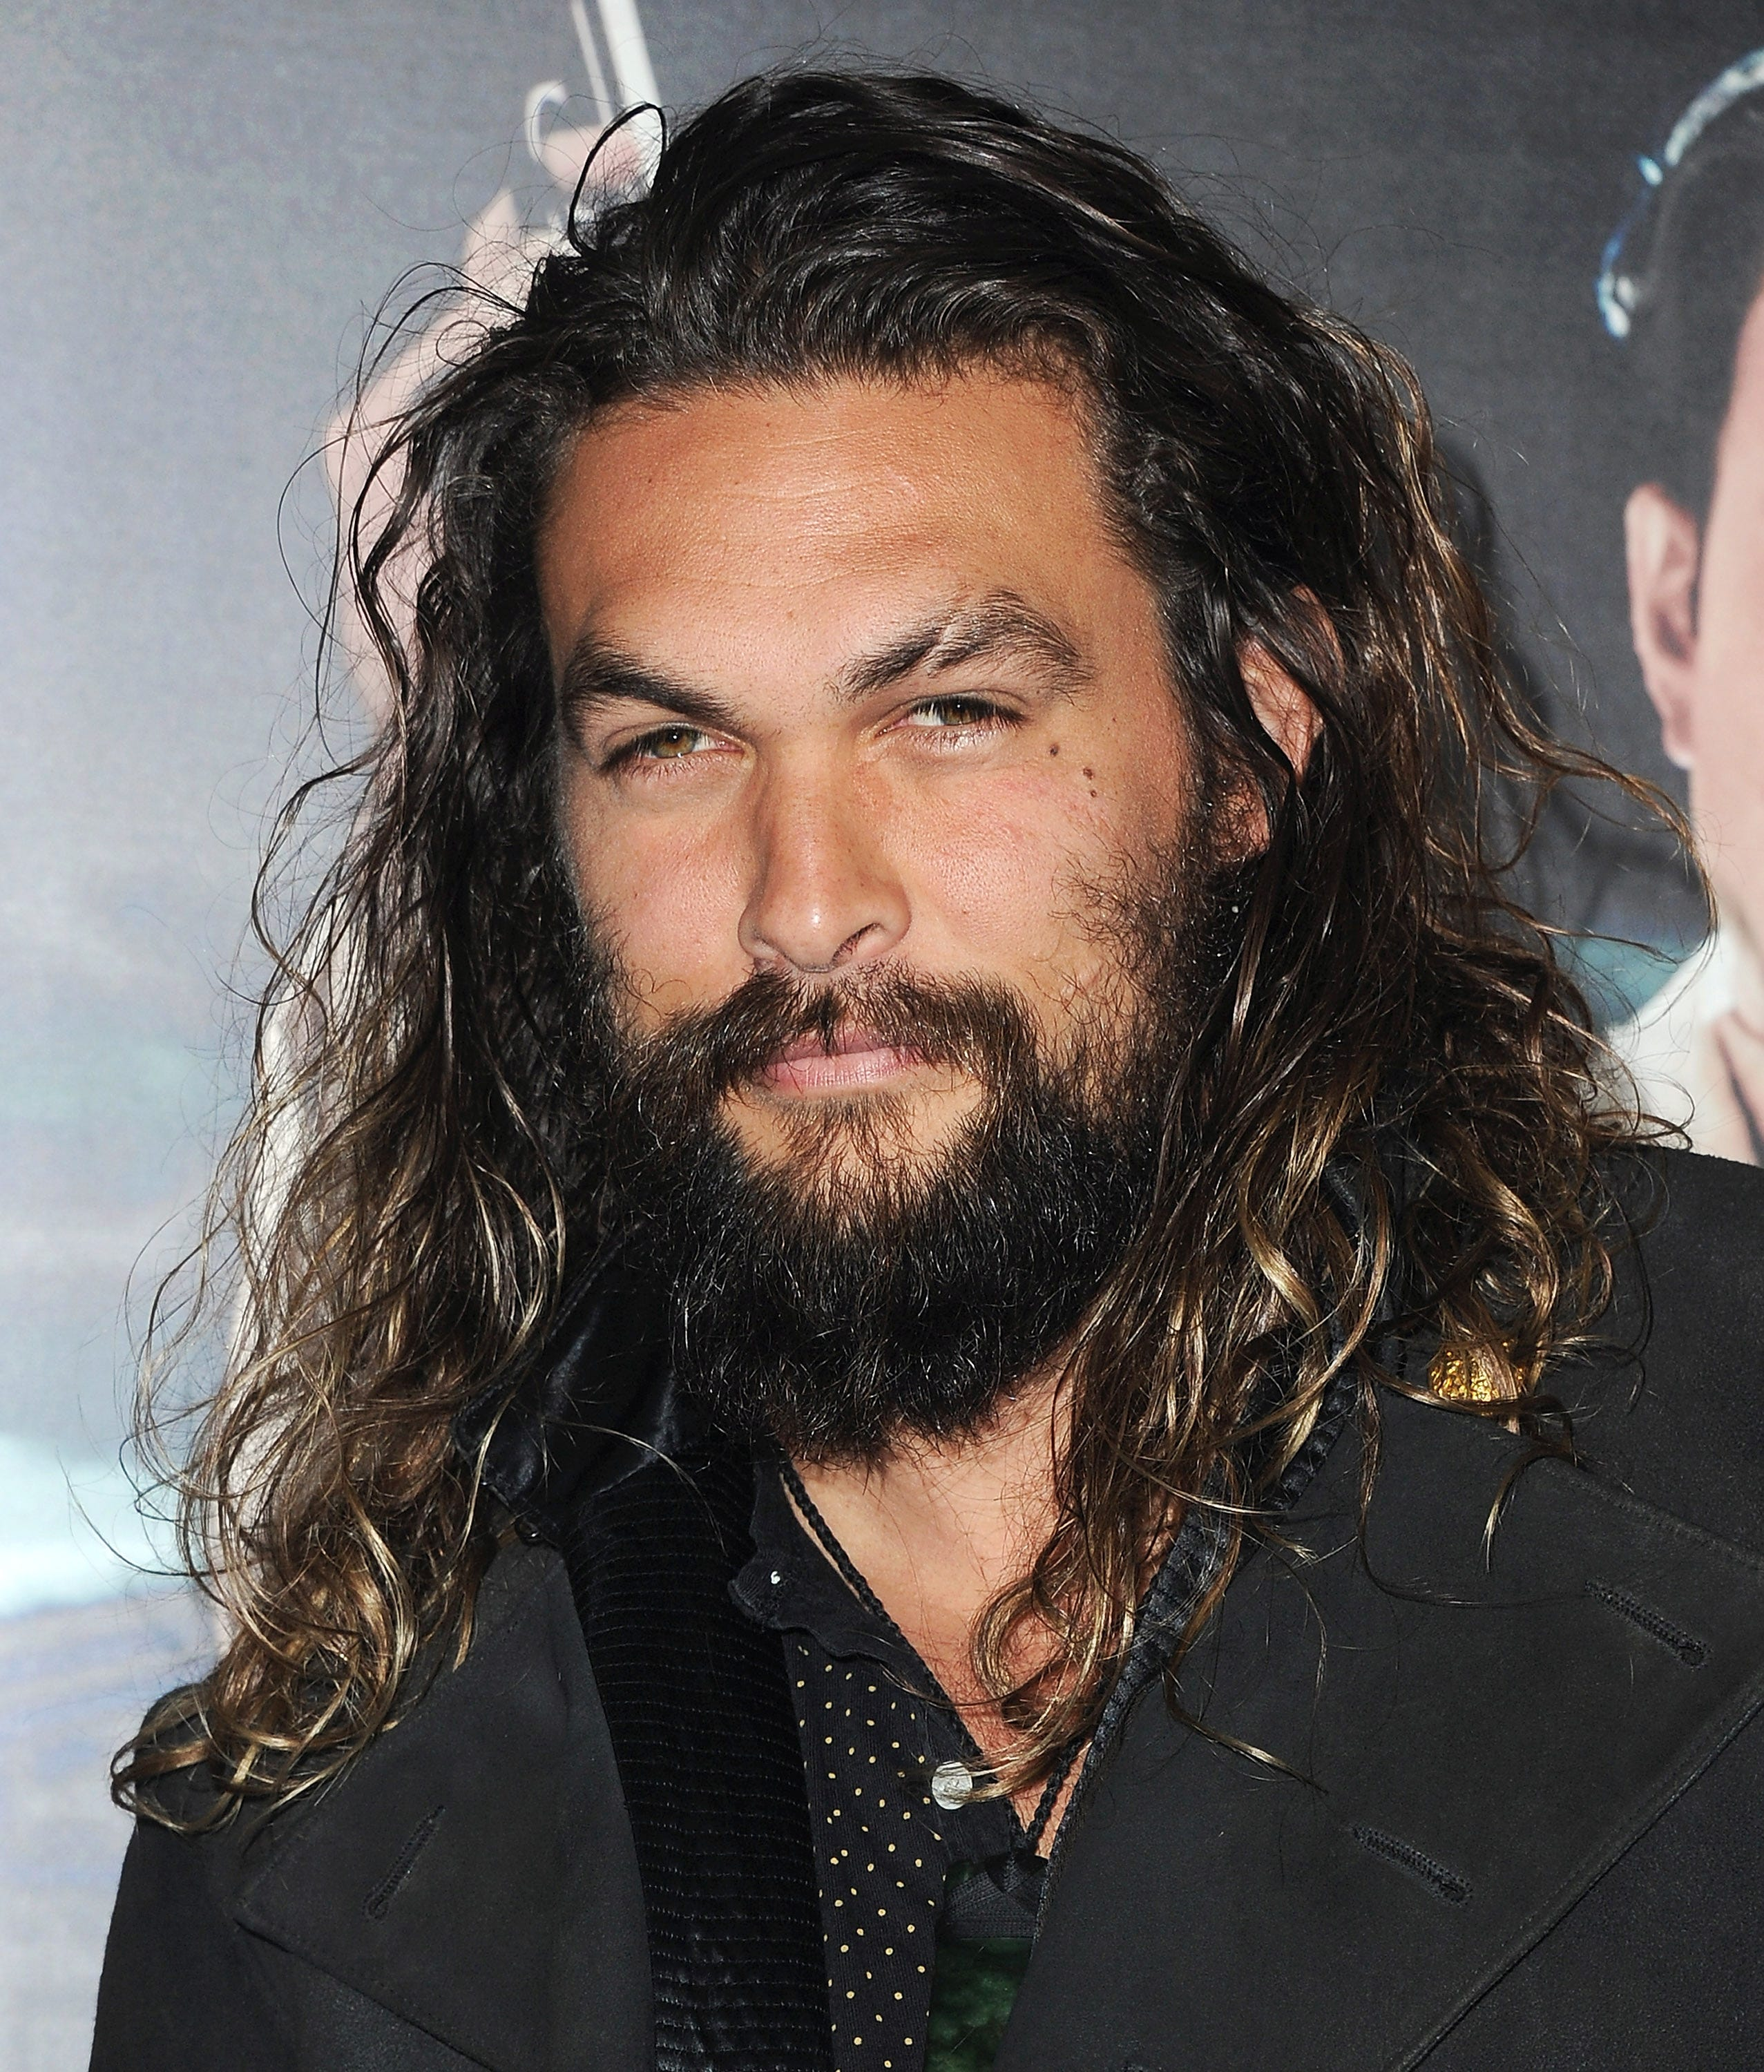 Watch This Jason Momoa GIF From His New Cannibal Romance & You Won't Regret It